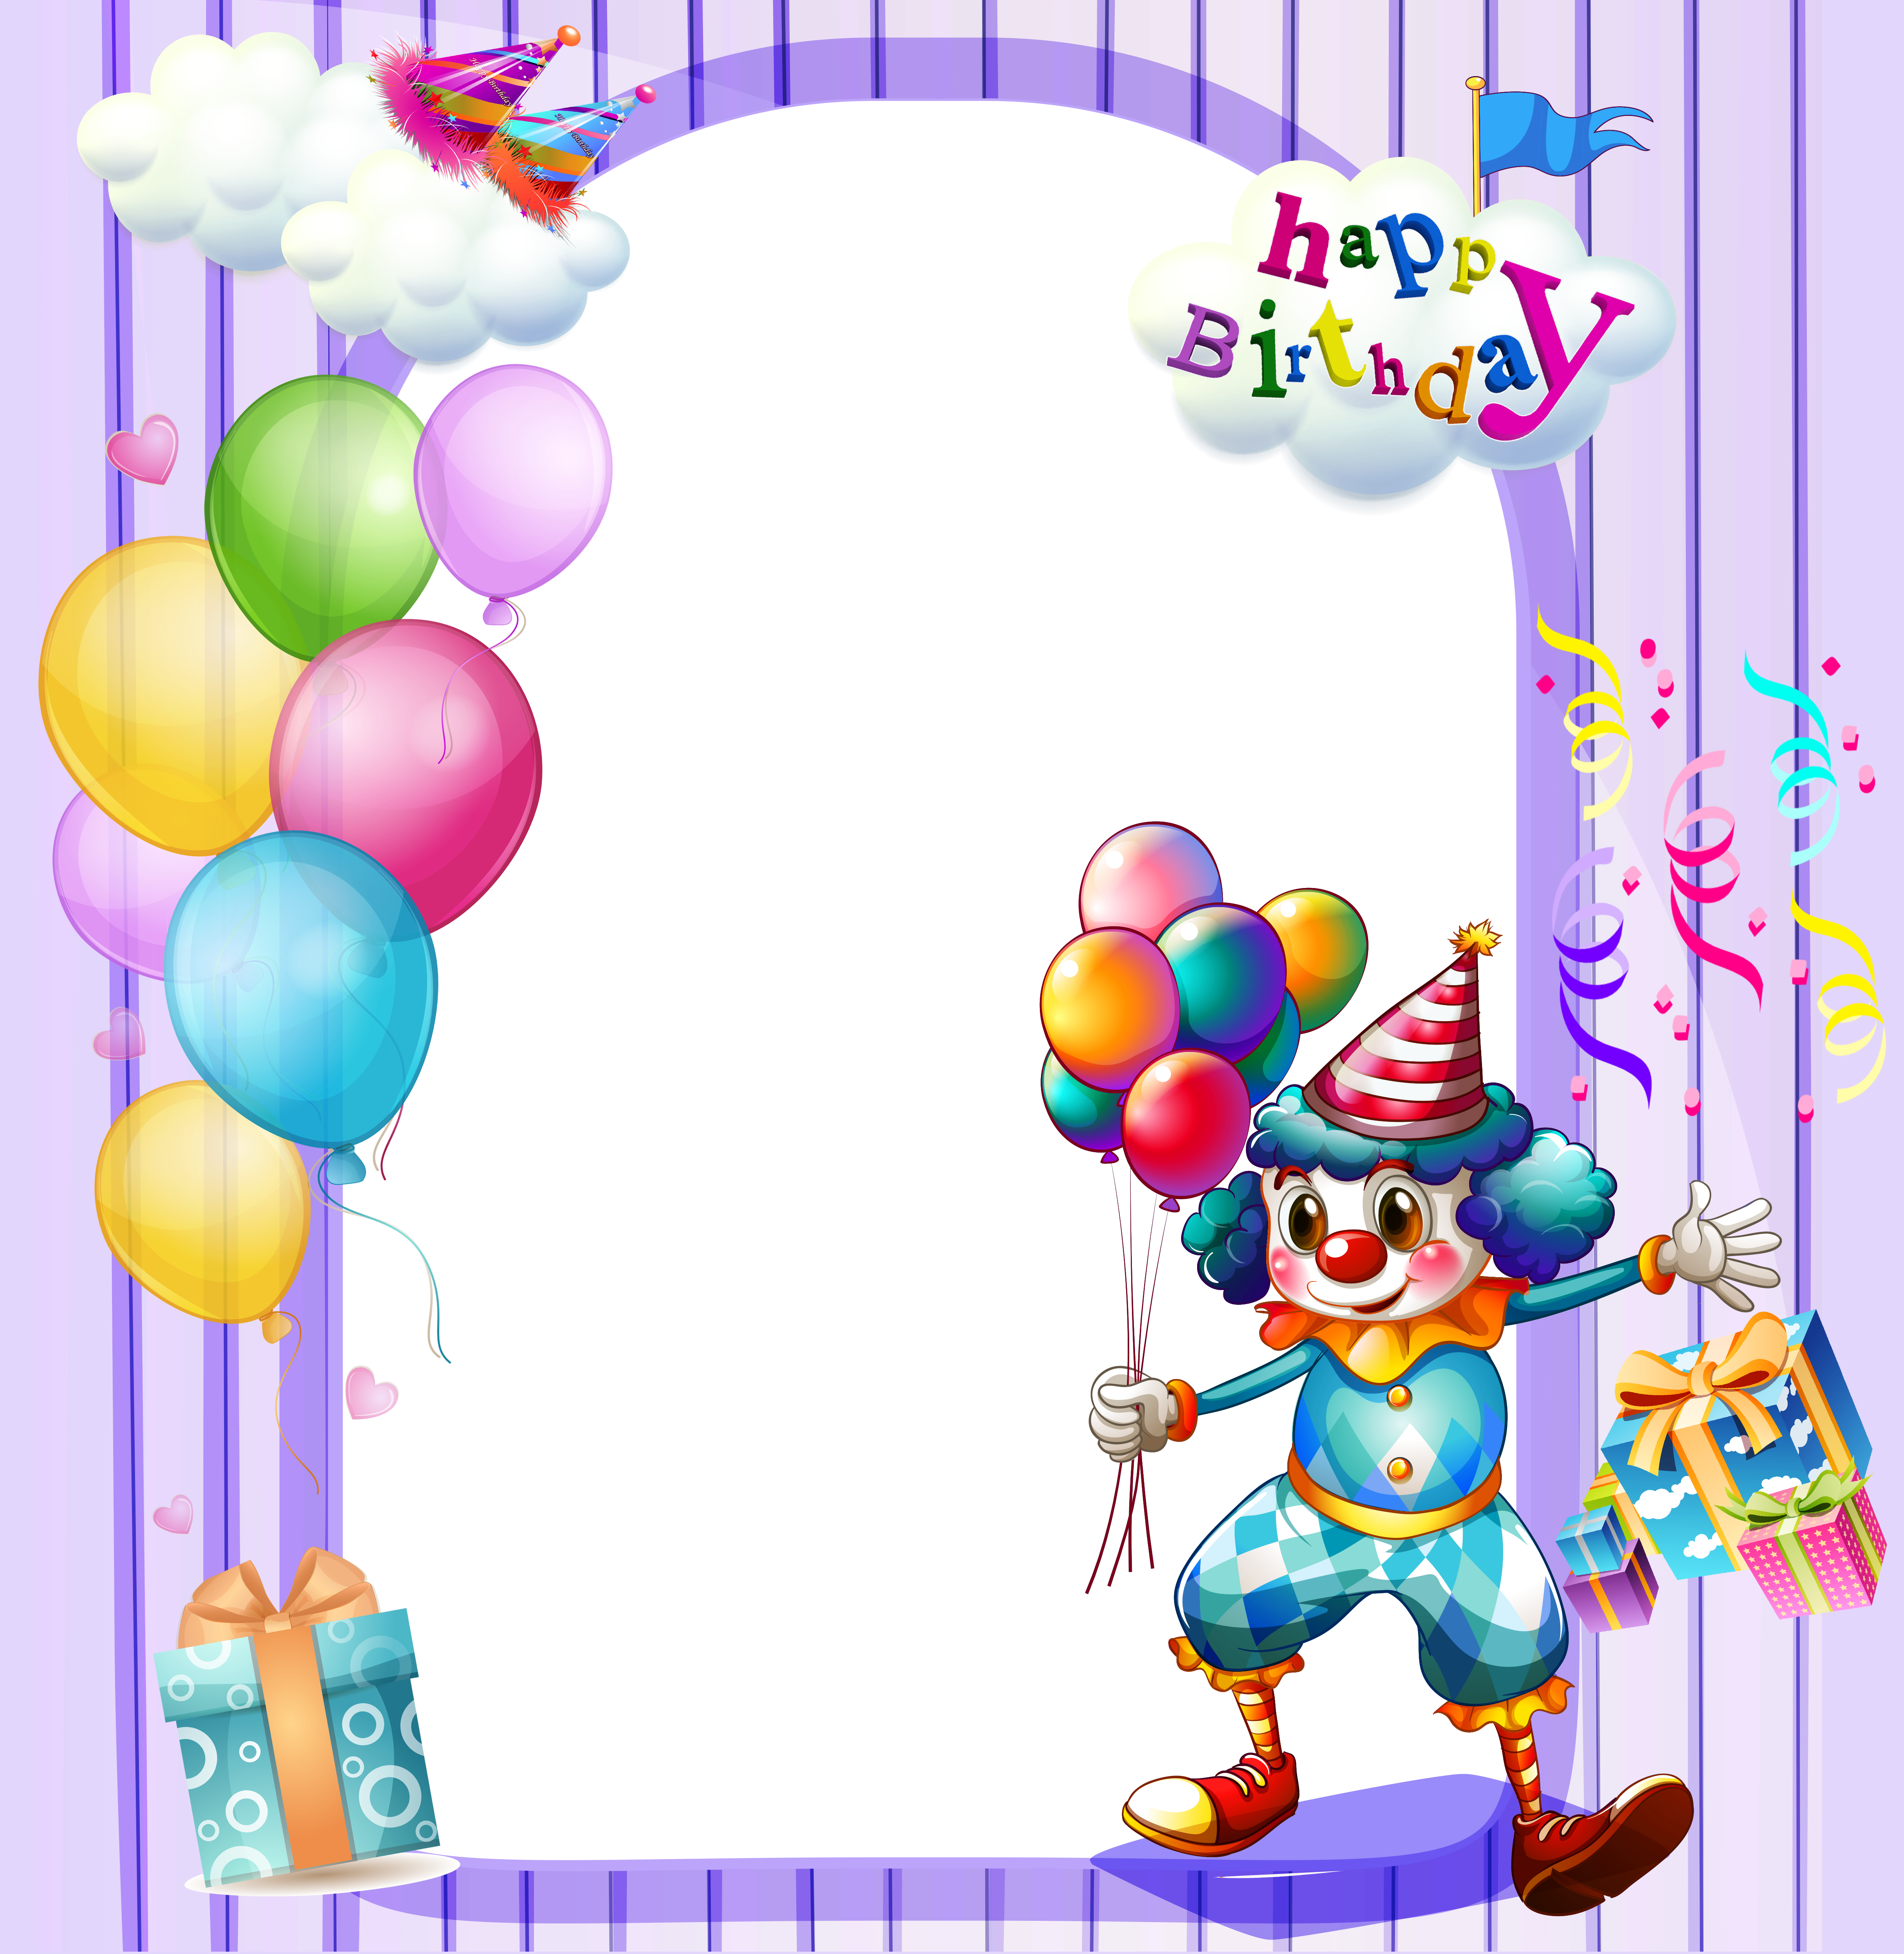 Free Birthday Frames - Cliparts.co